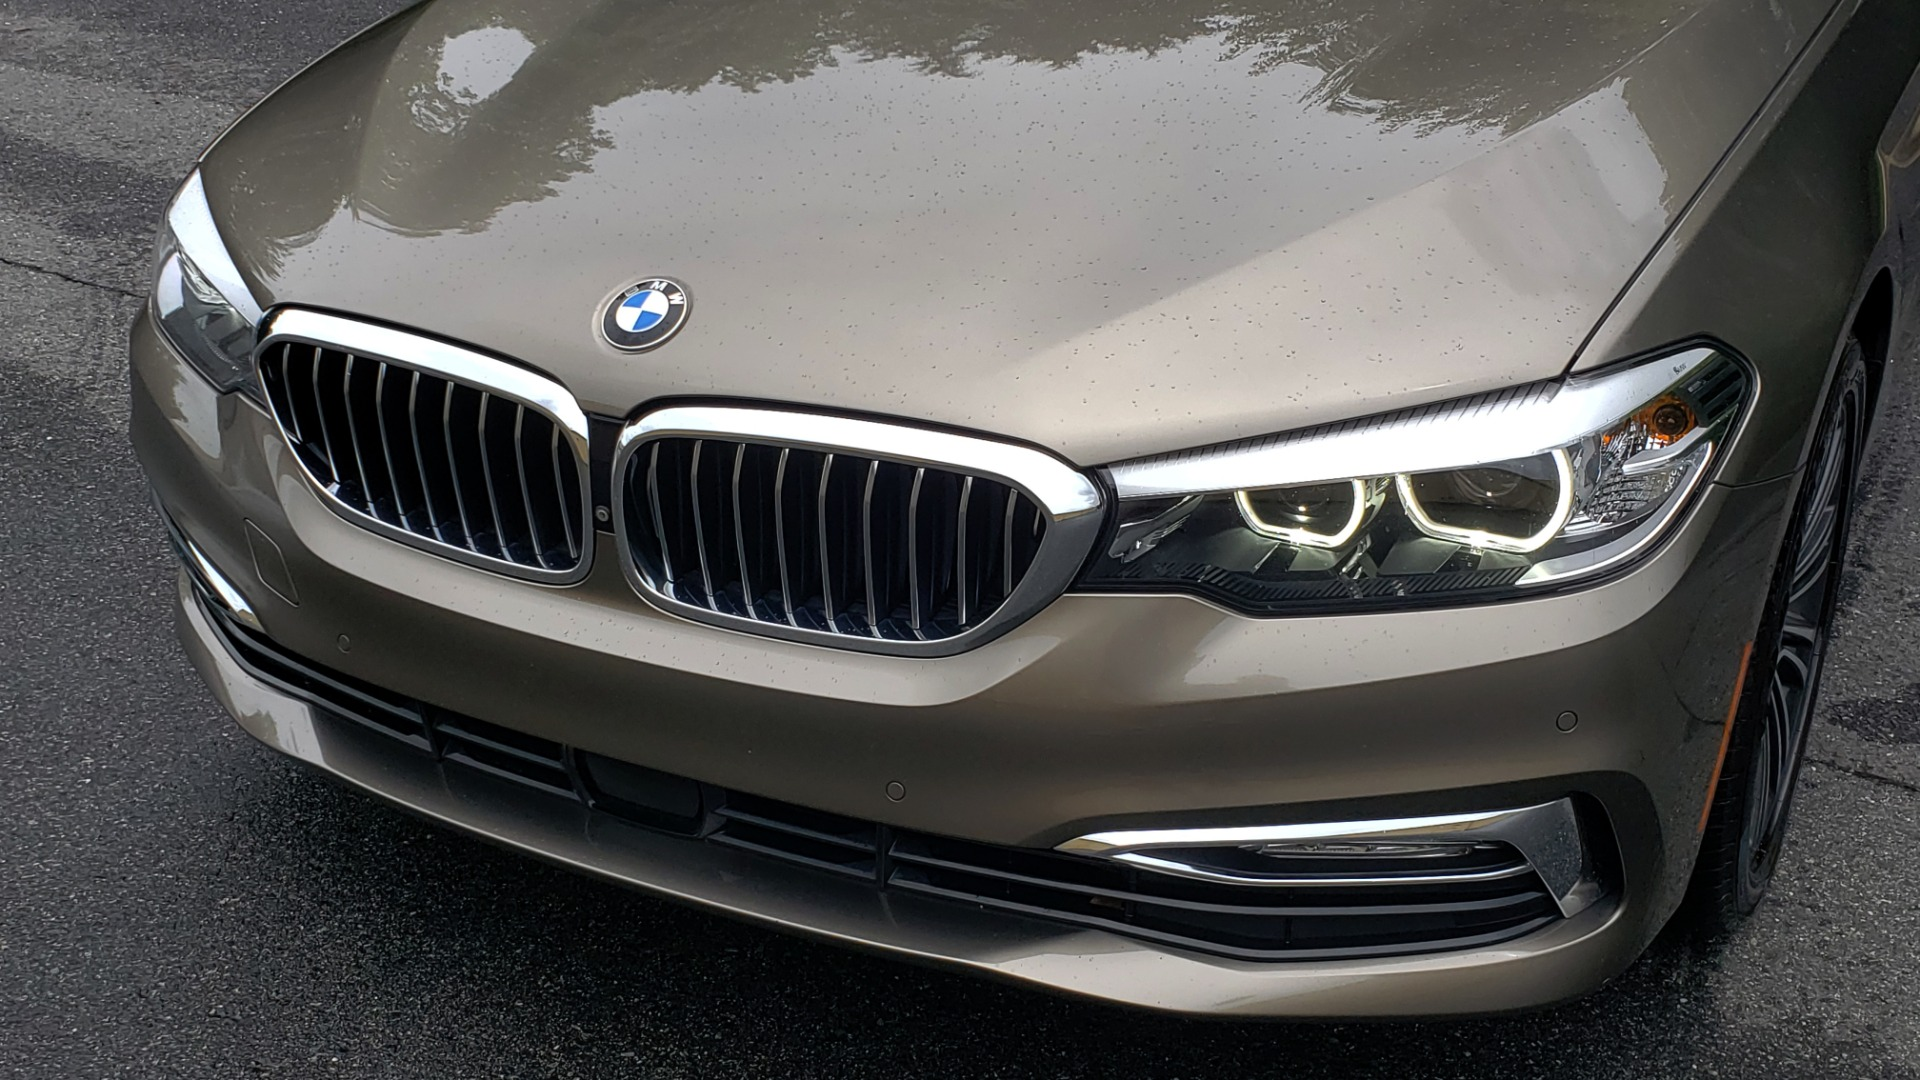 Used 2017 BMW 5 SERIES 530I PREMIUM / NAV / SUNROOF / DRVR ASST PLUS II / LUXURY for sale Sold at Formula Imports in Charlotte NC 28227 24